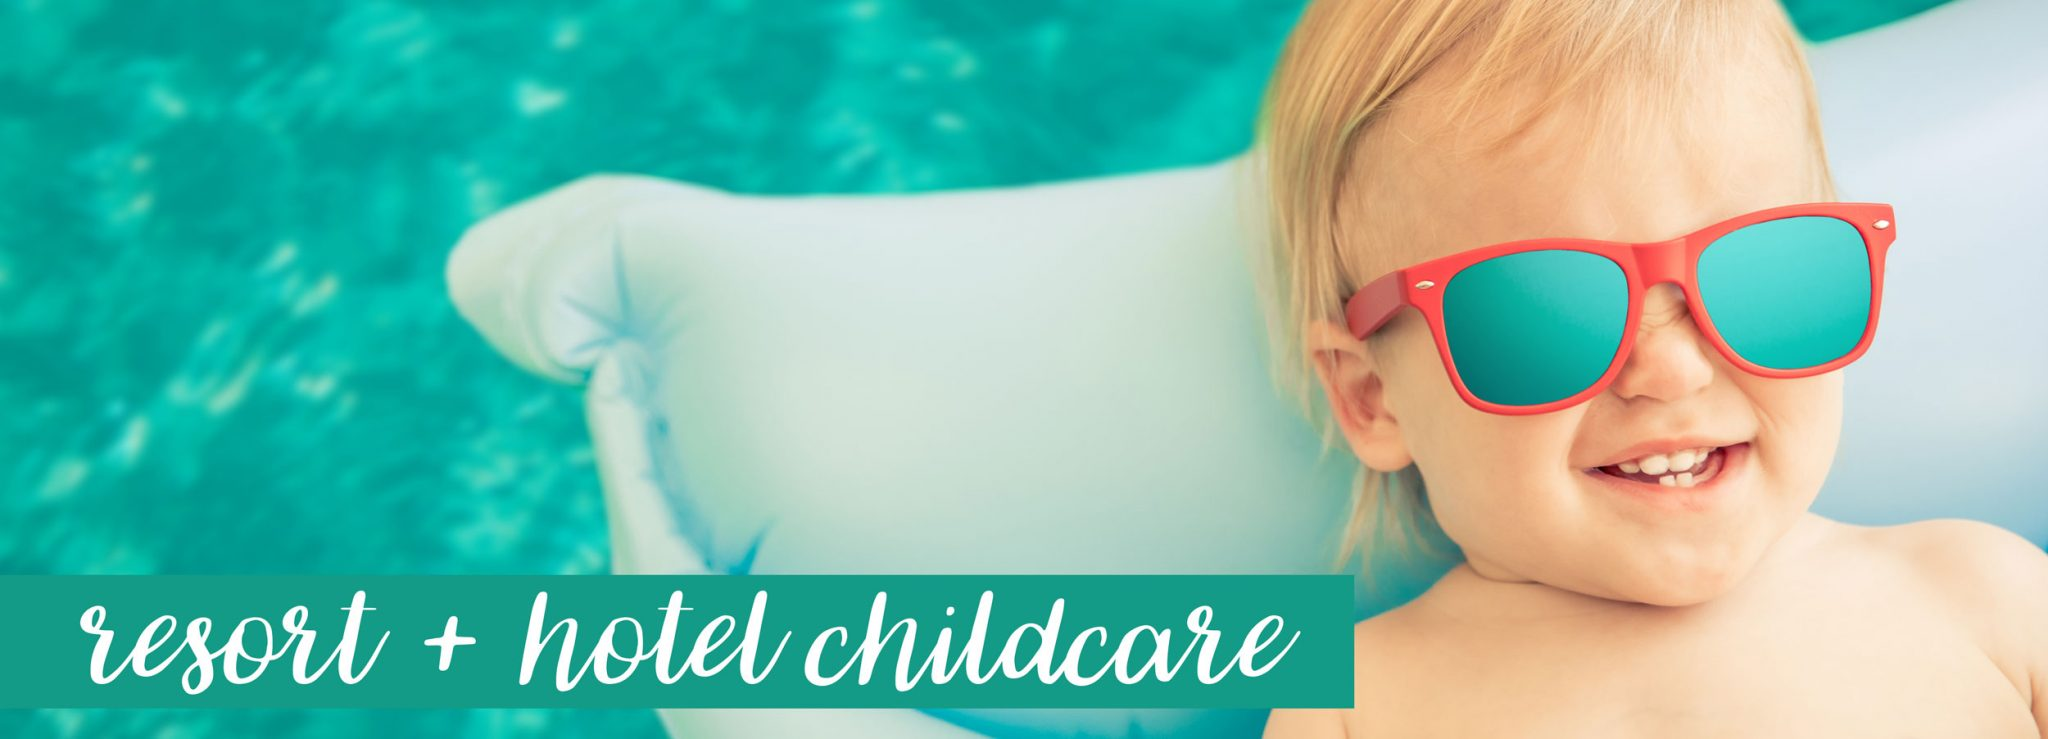 Resort and Hotel Childcare Service from Capitol Park Nannies, Sacramento-based Nanny Agency (teal banner)